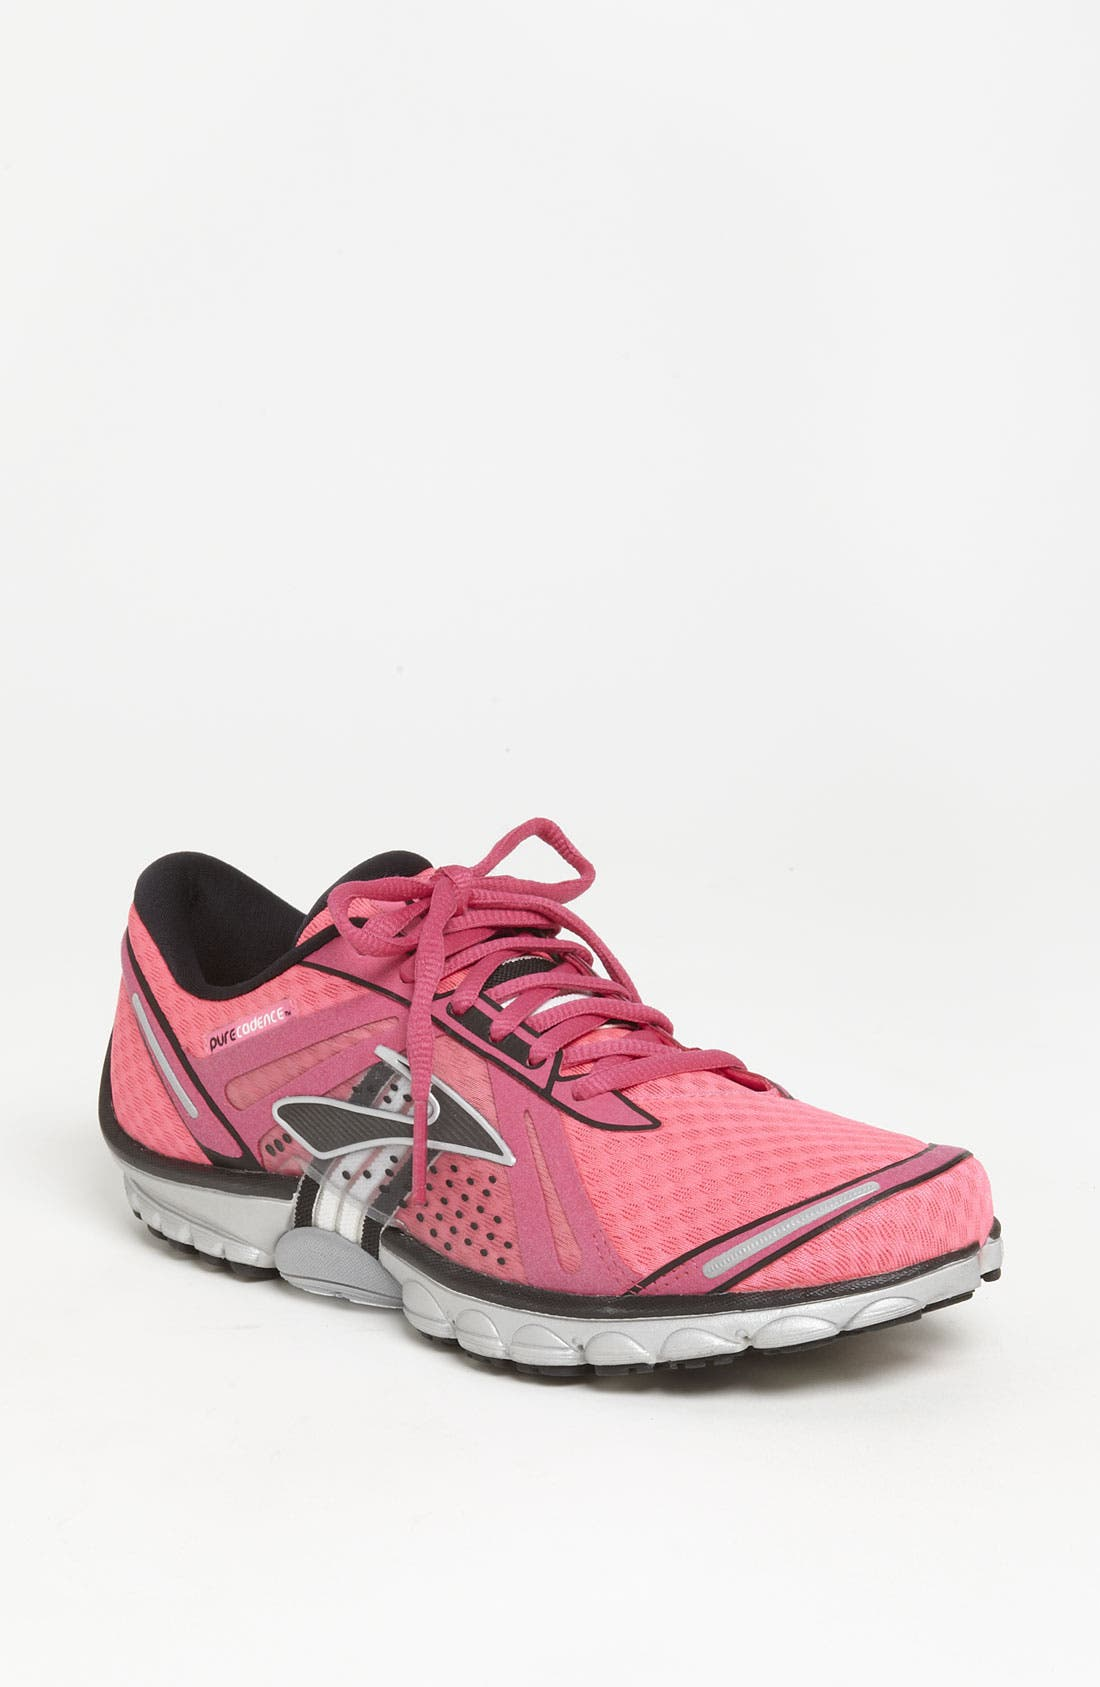 Alternate Image 1 Selected - Brooks 'PureCadence' Running Shoe (Women) (Regular Retail Price: $119.95)